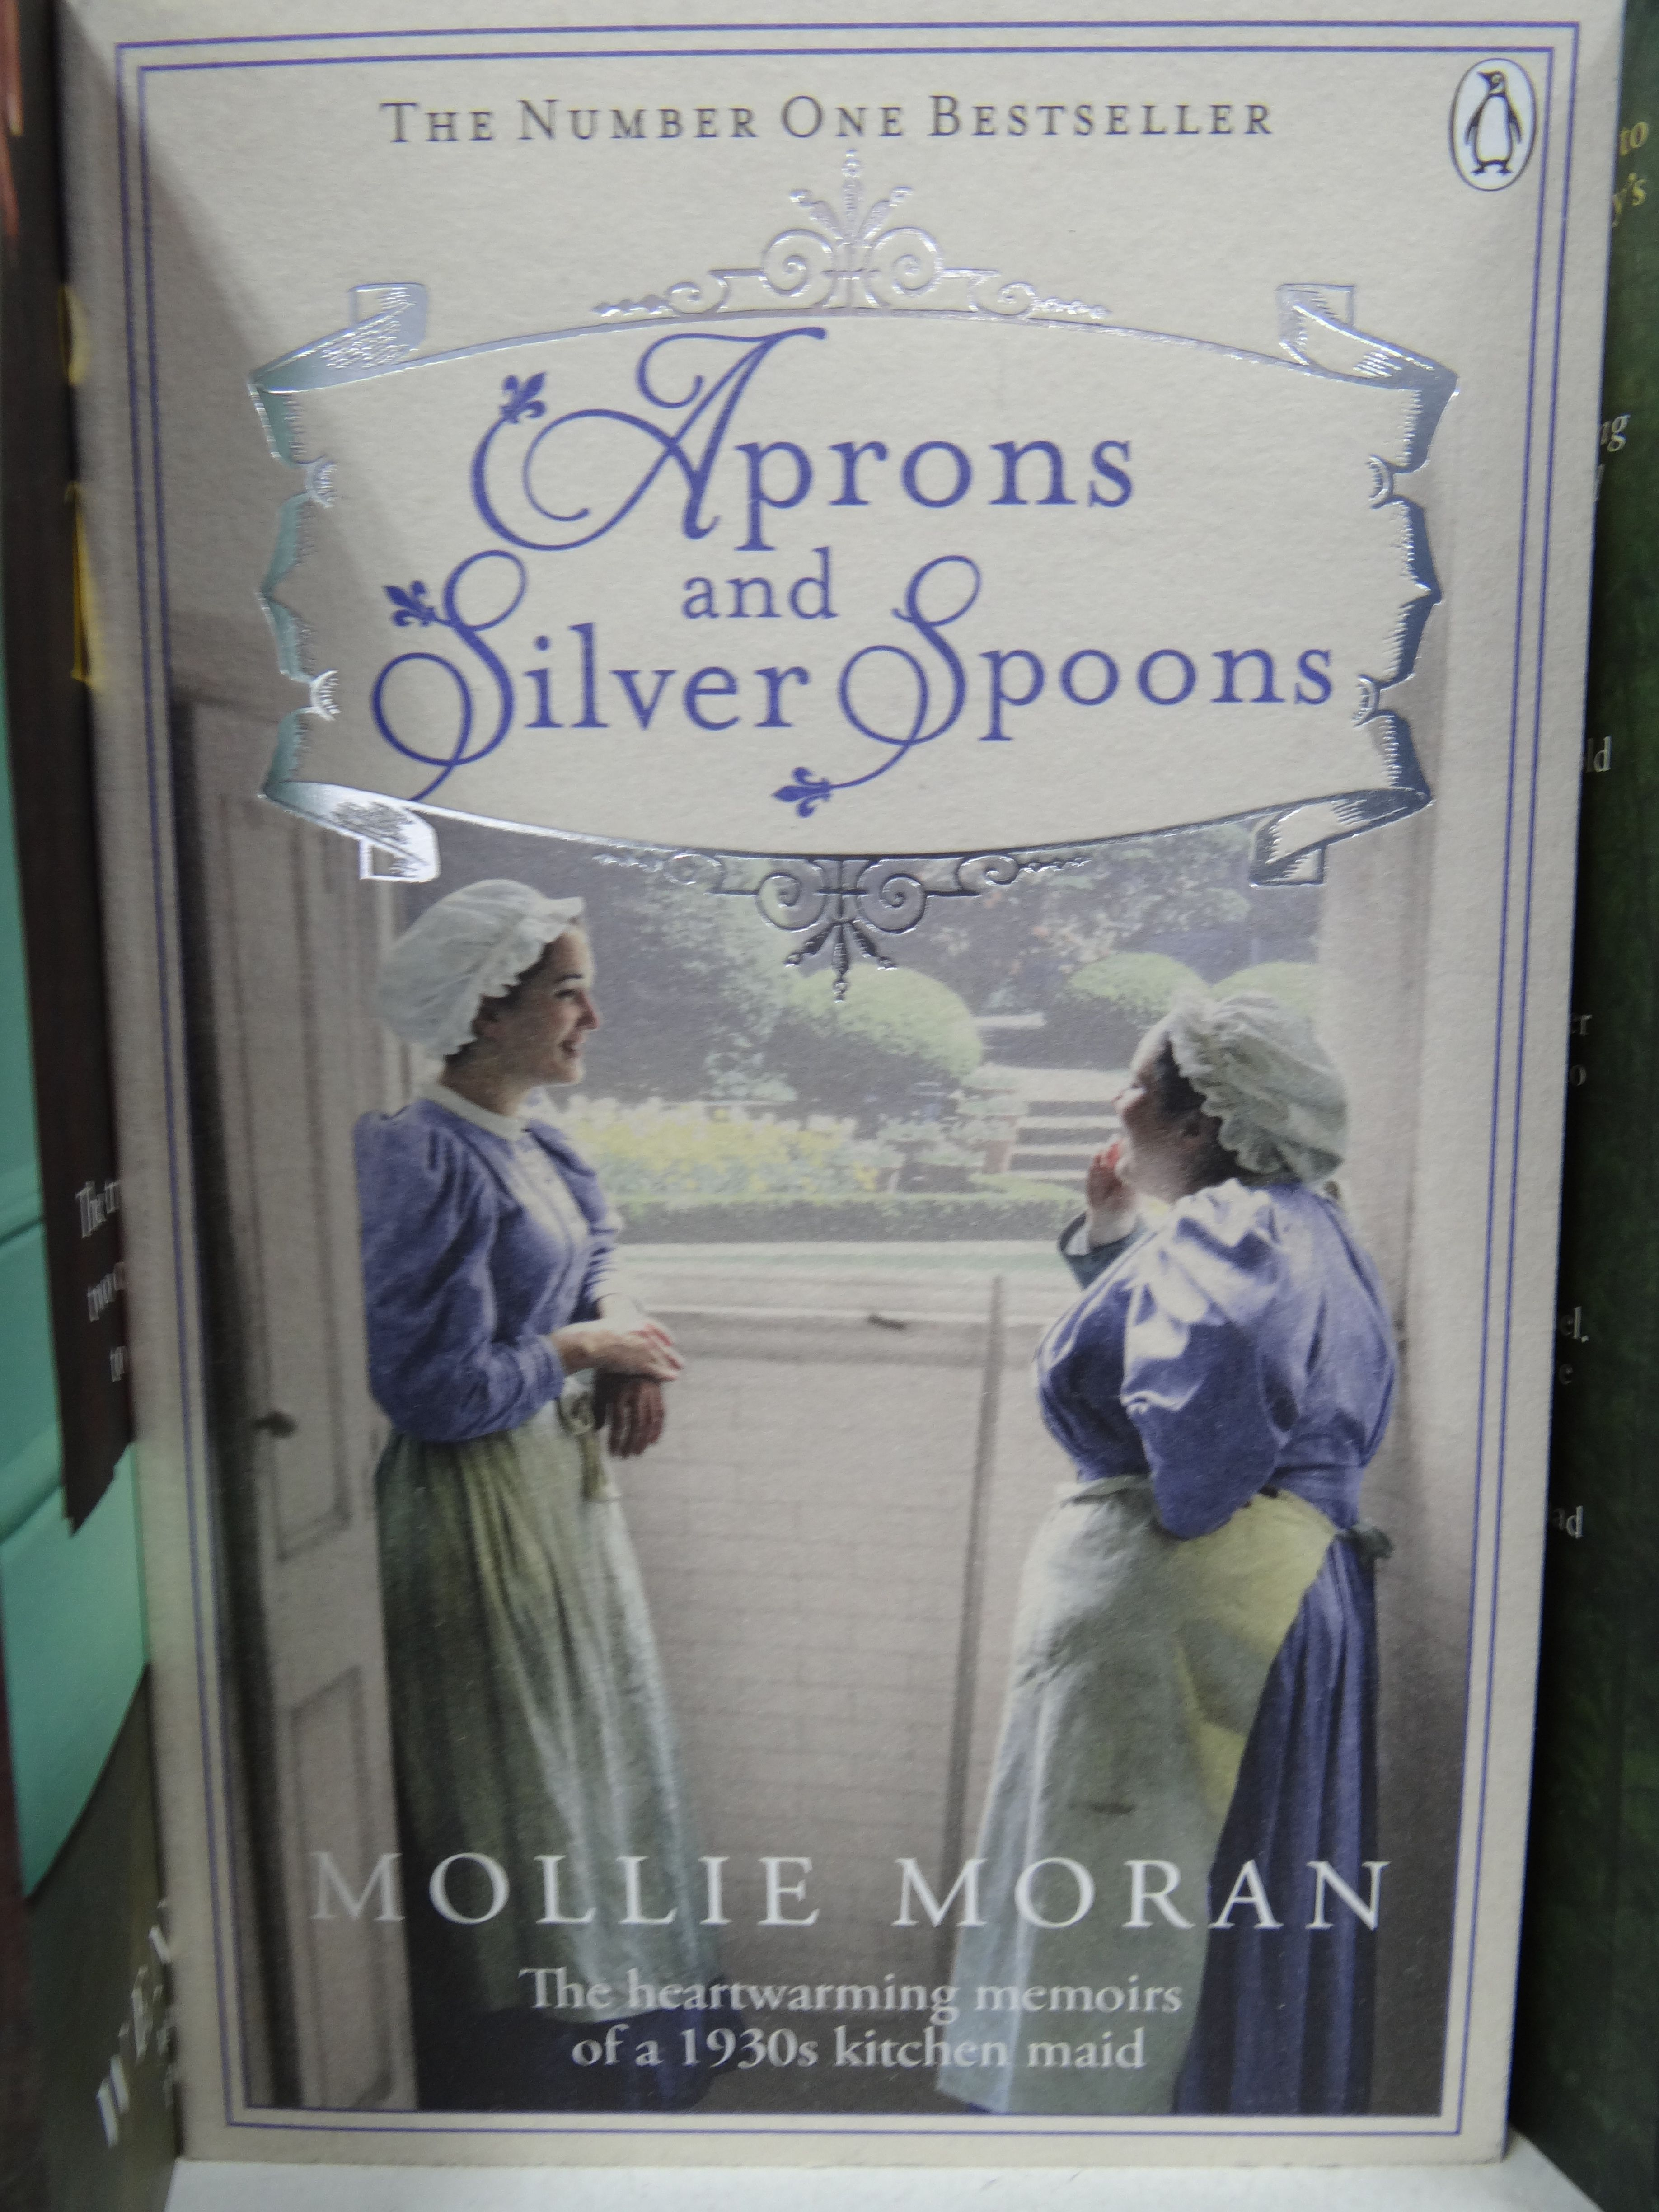 Mollie Moran - Aprons and Silver Spoons